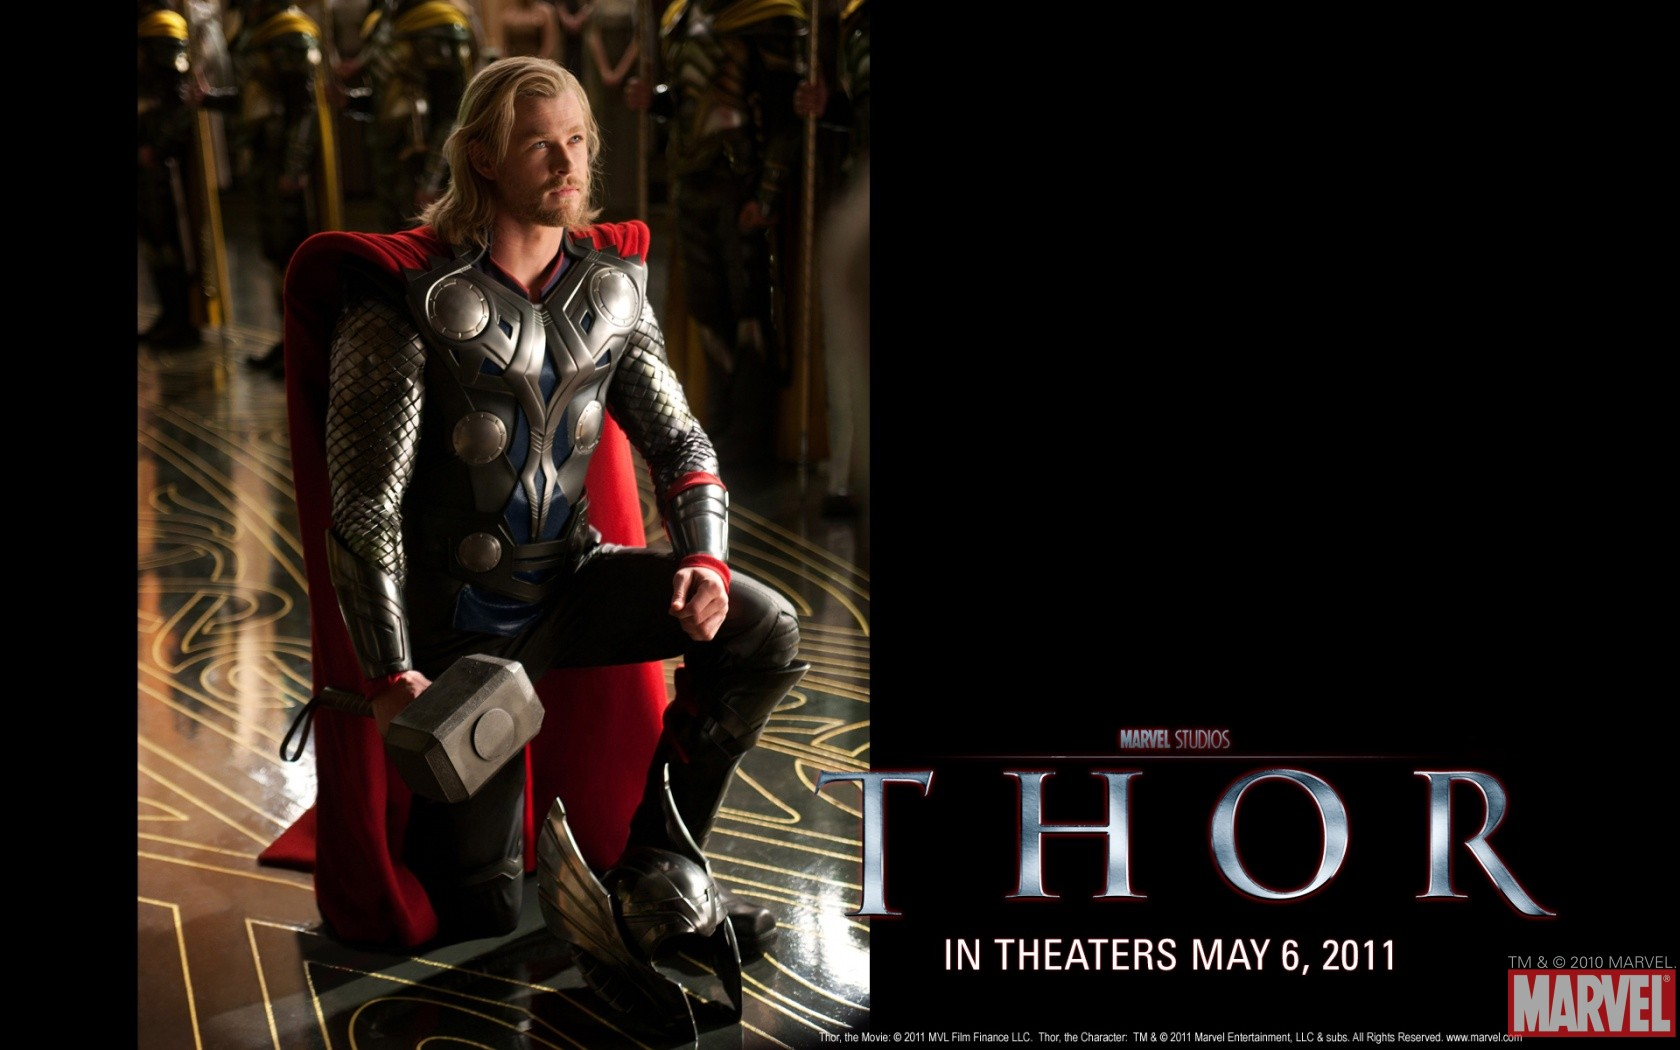 Download Thor Movie Wallpaper 11 Apps Marvelcom 1680x1050 72